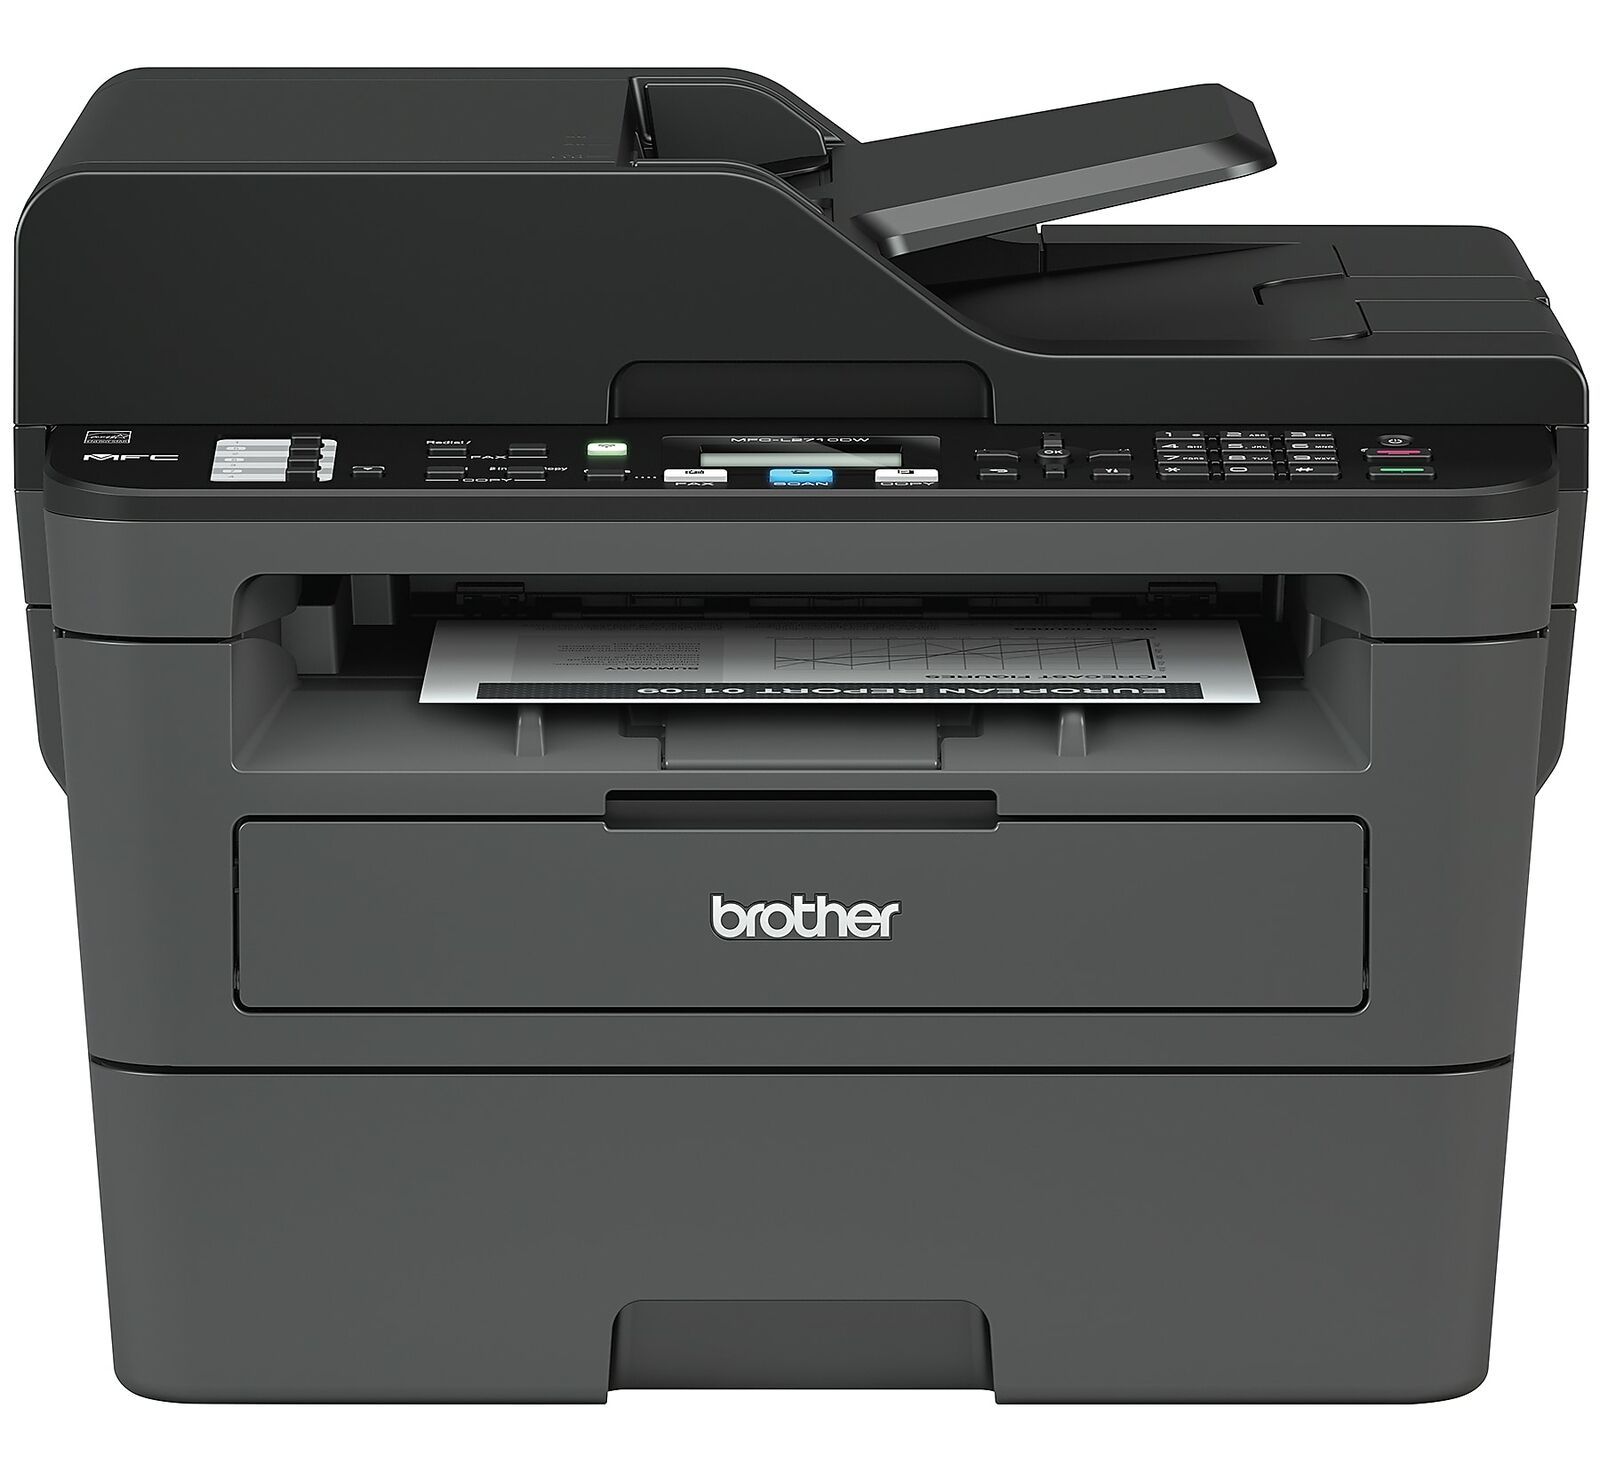 Brother MFC-L2710DW Wireless Monochrome Laser RMFCL2710DW. Buy it now for 189.17